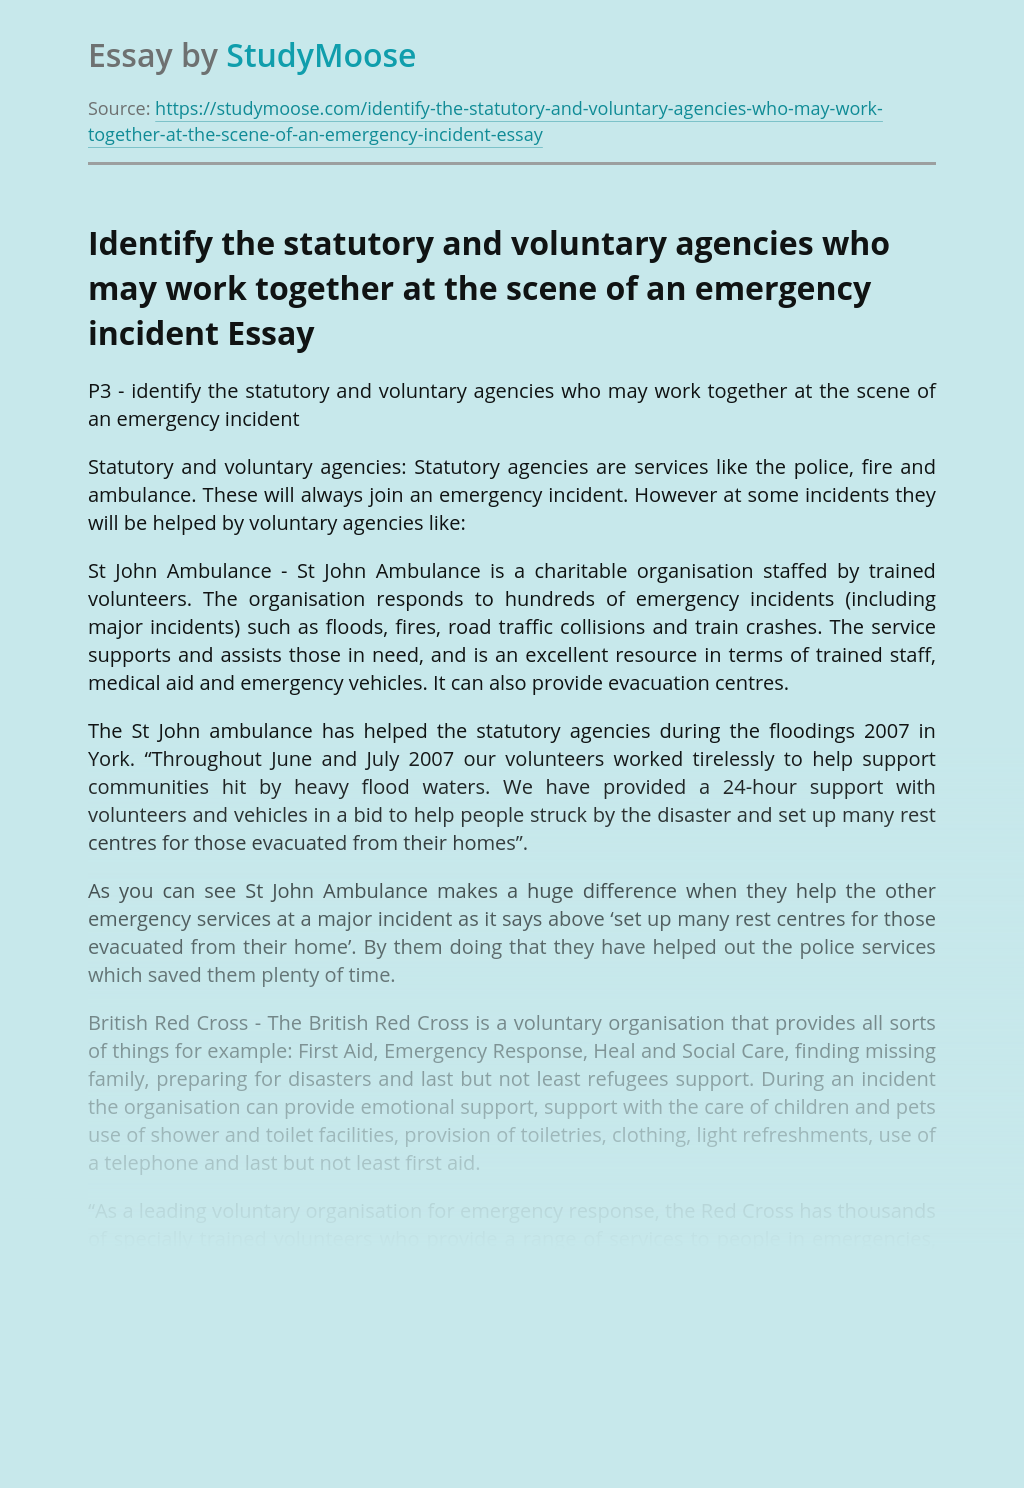 Identify the statutory and voluntary agencies who may work together at the scene of an emergency incident